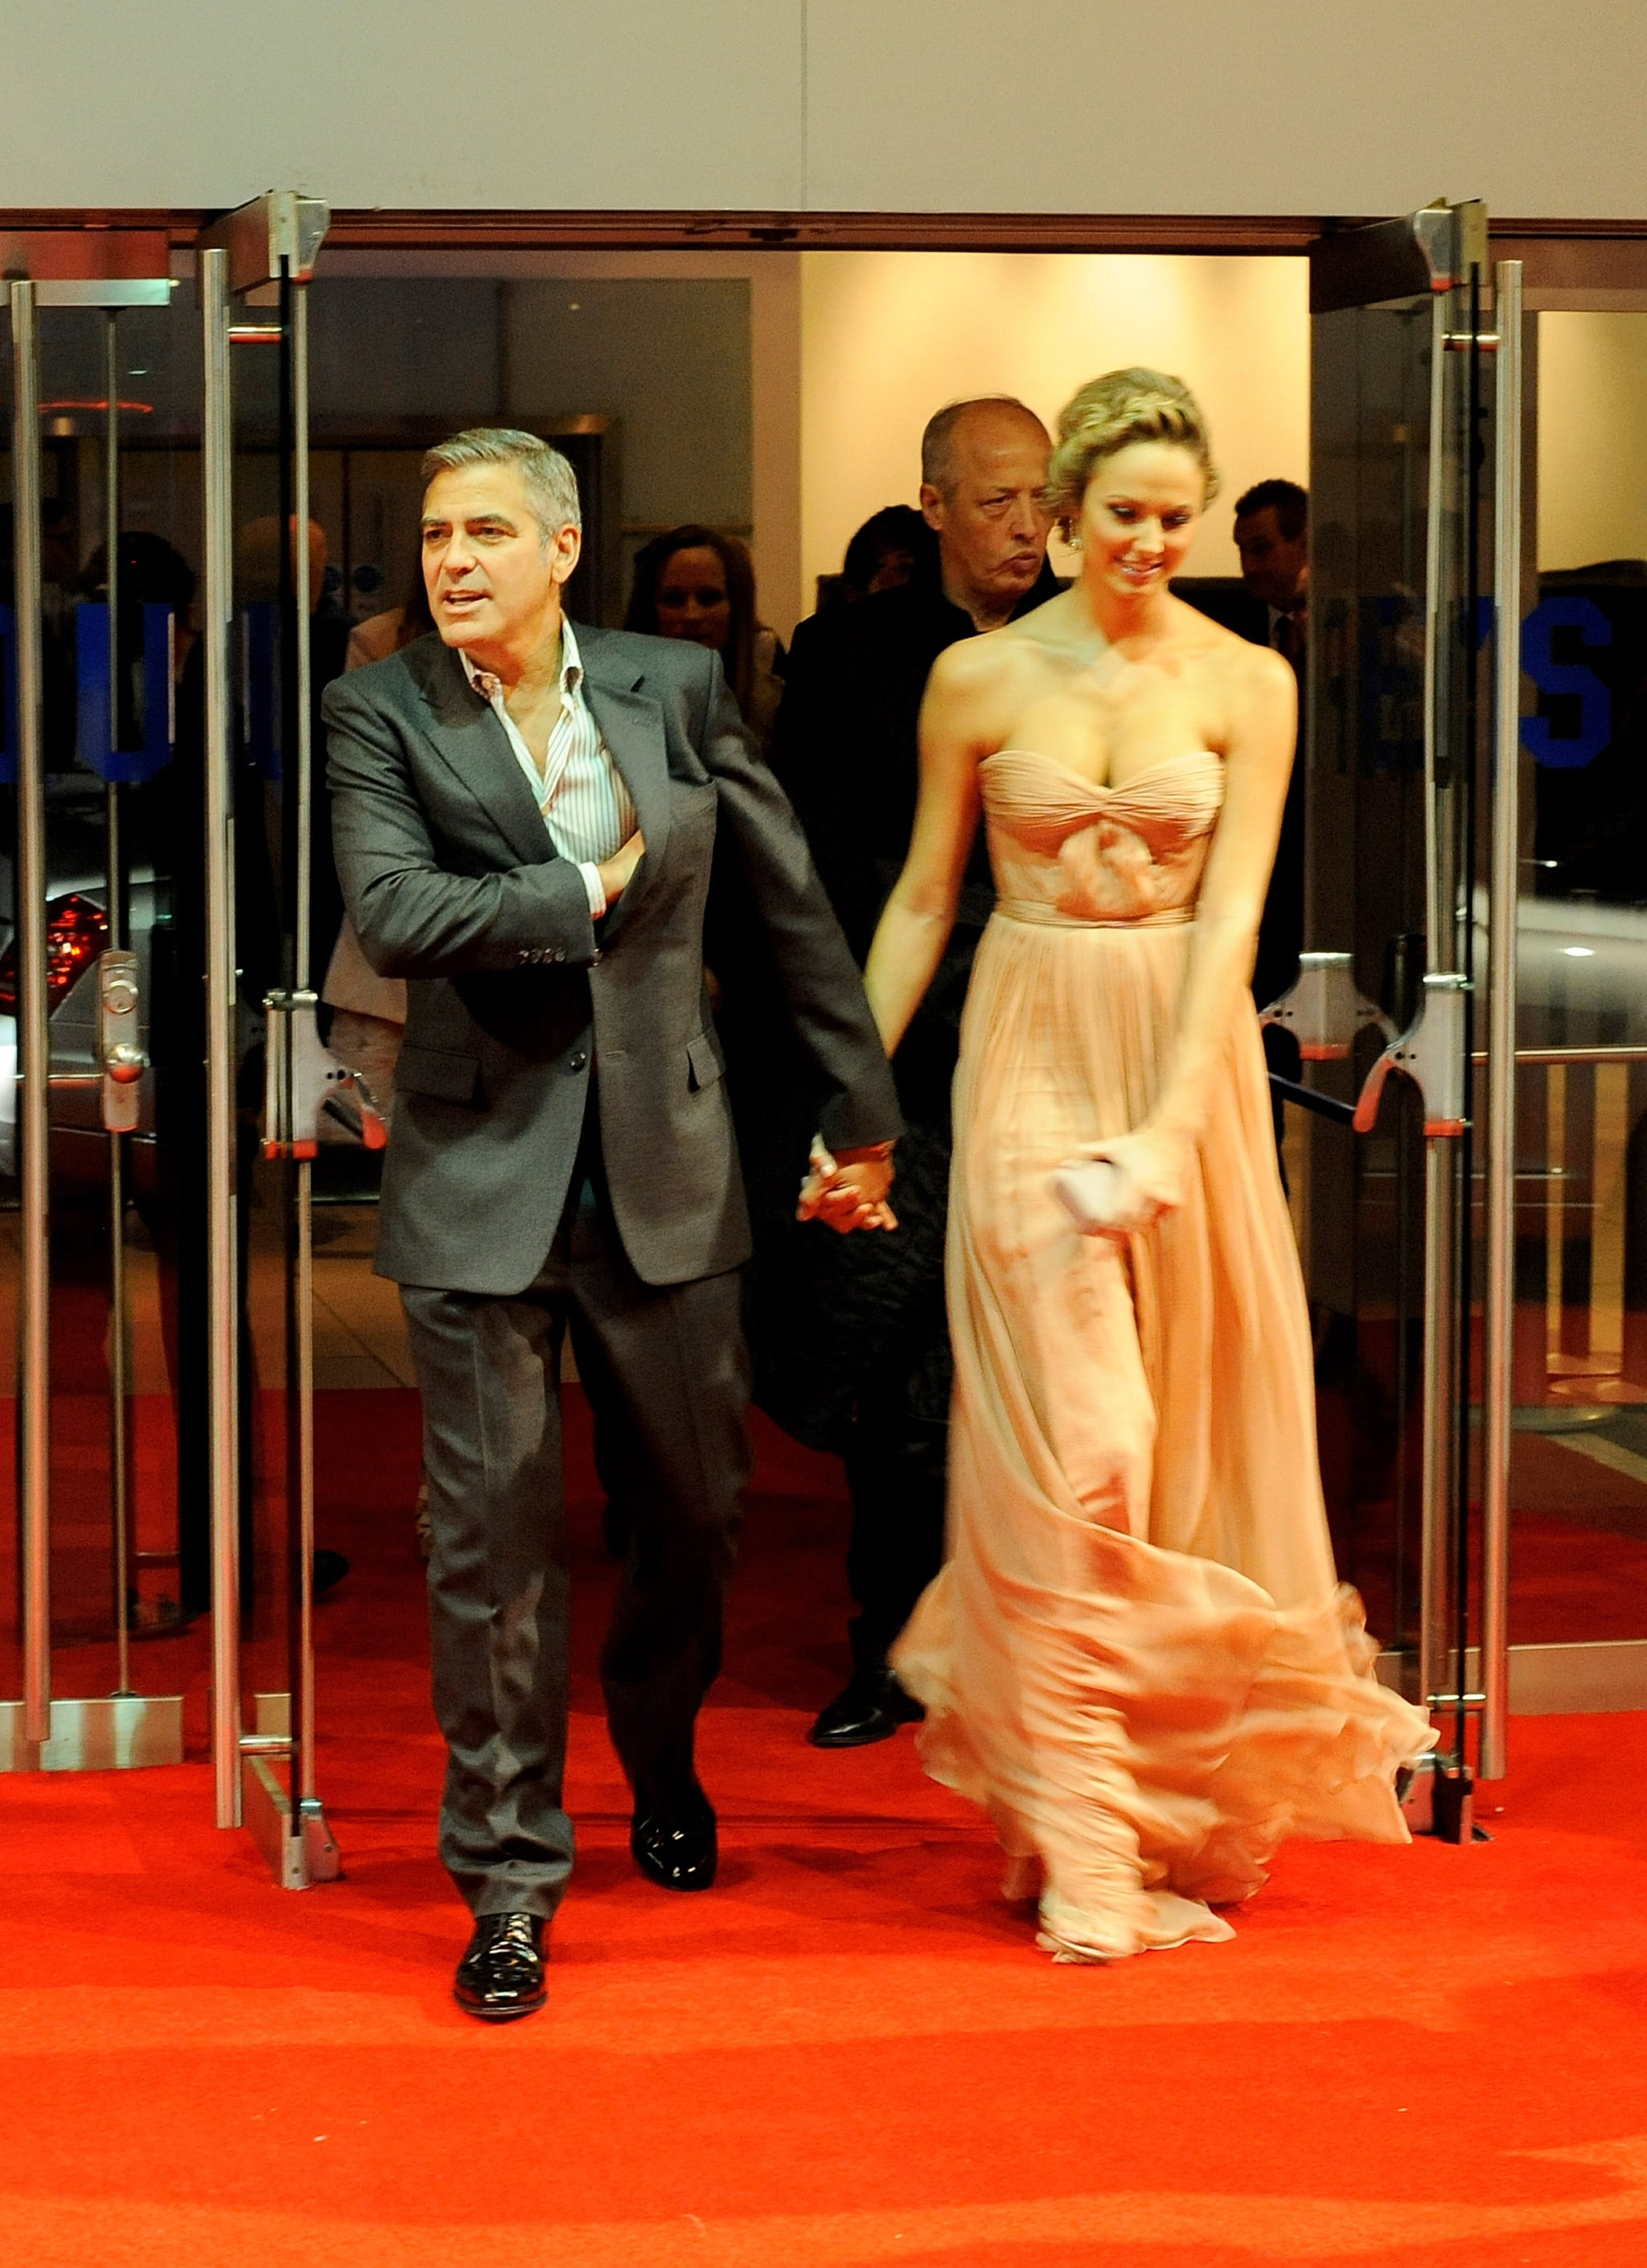 George Clooney and Stacy Keibler on the red carpet.